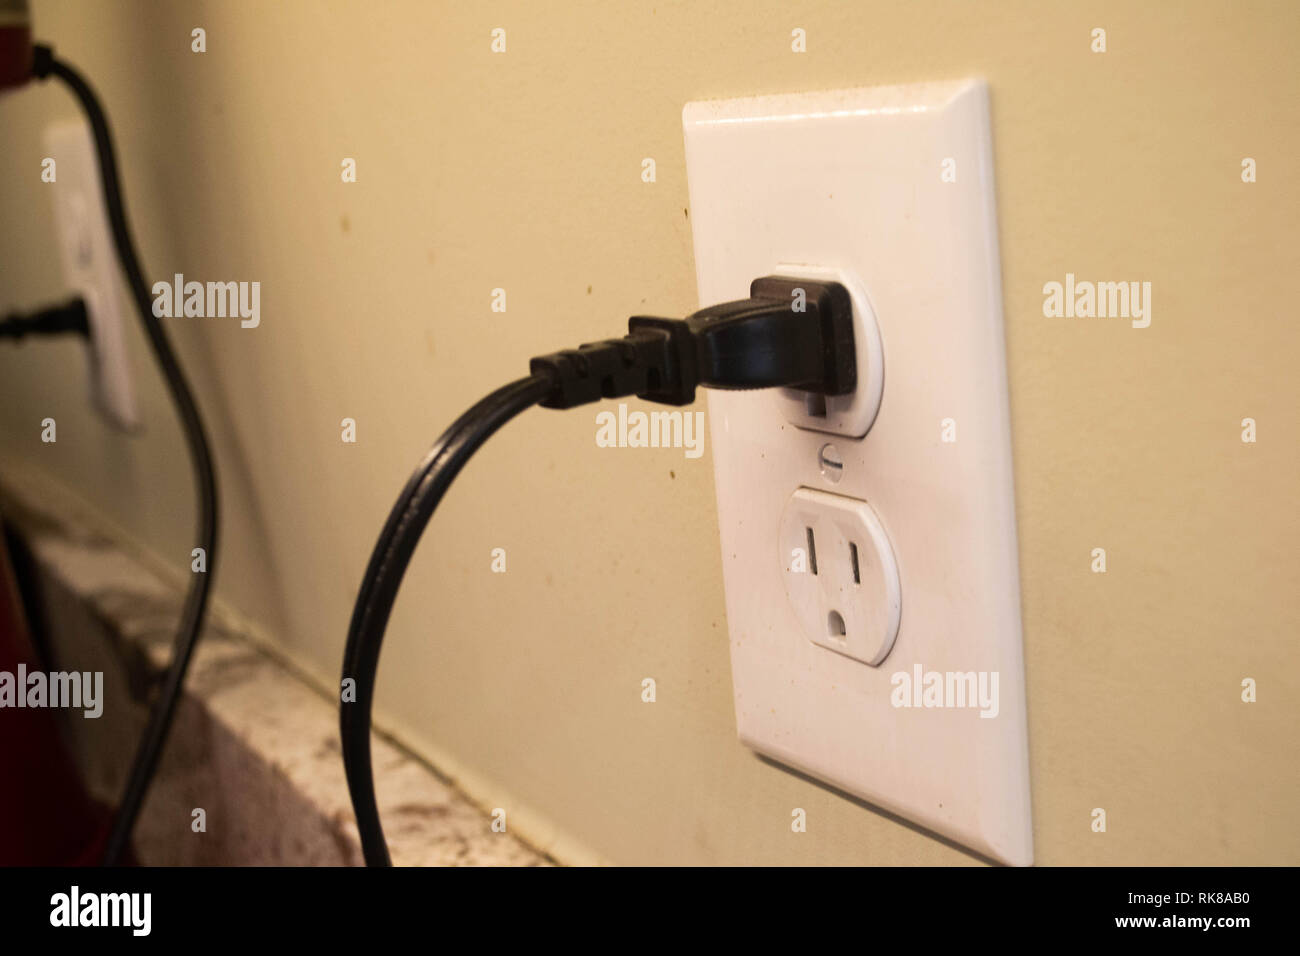 Appliances are plugged into kitchen outlets - Stock Image